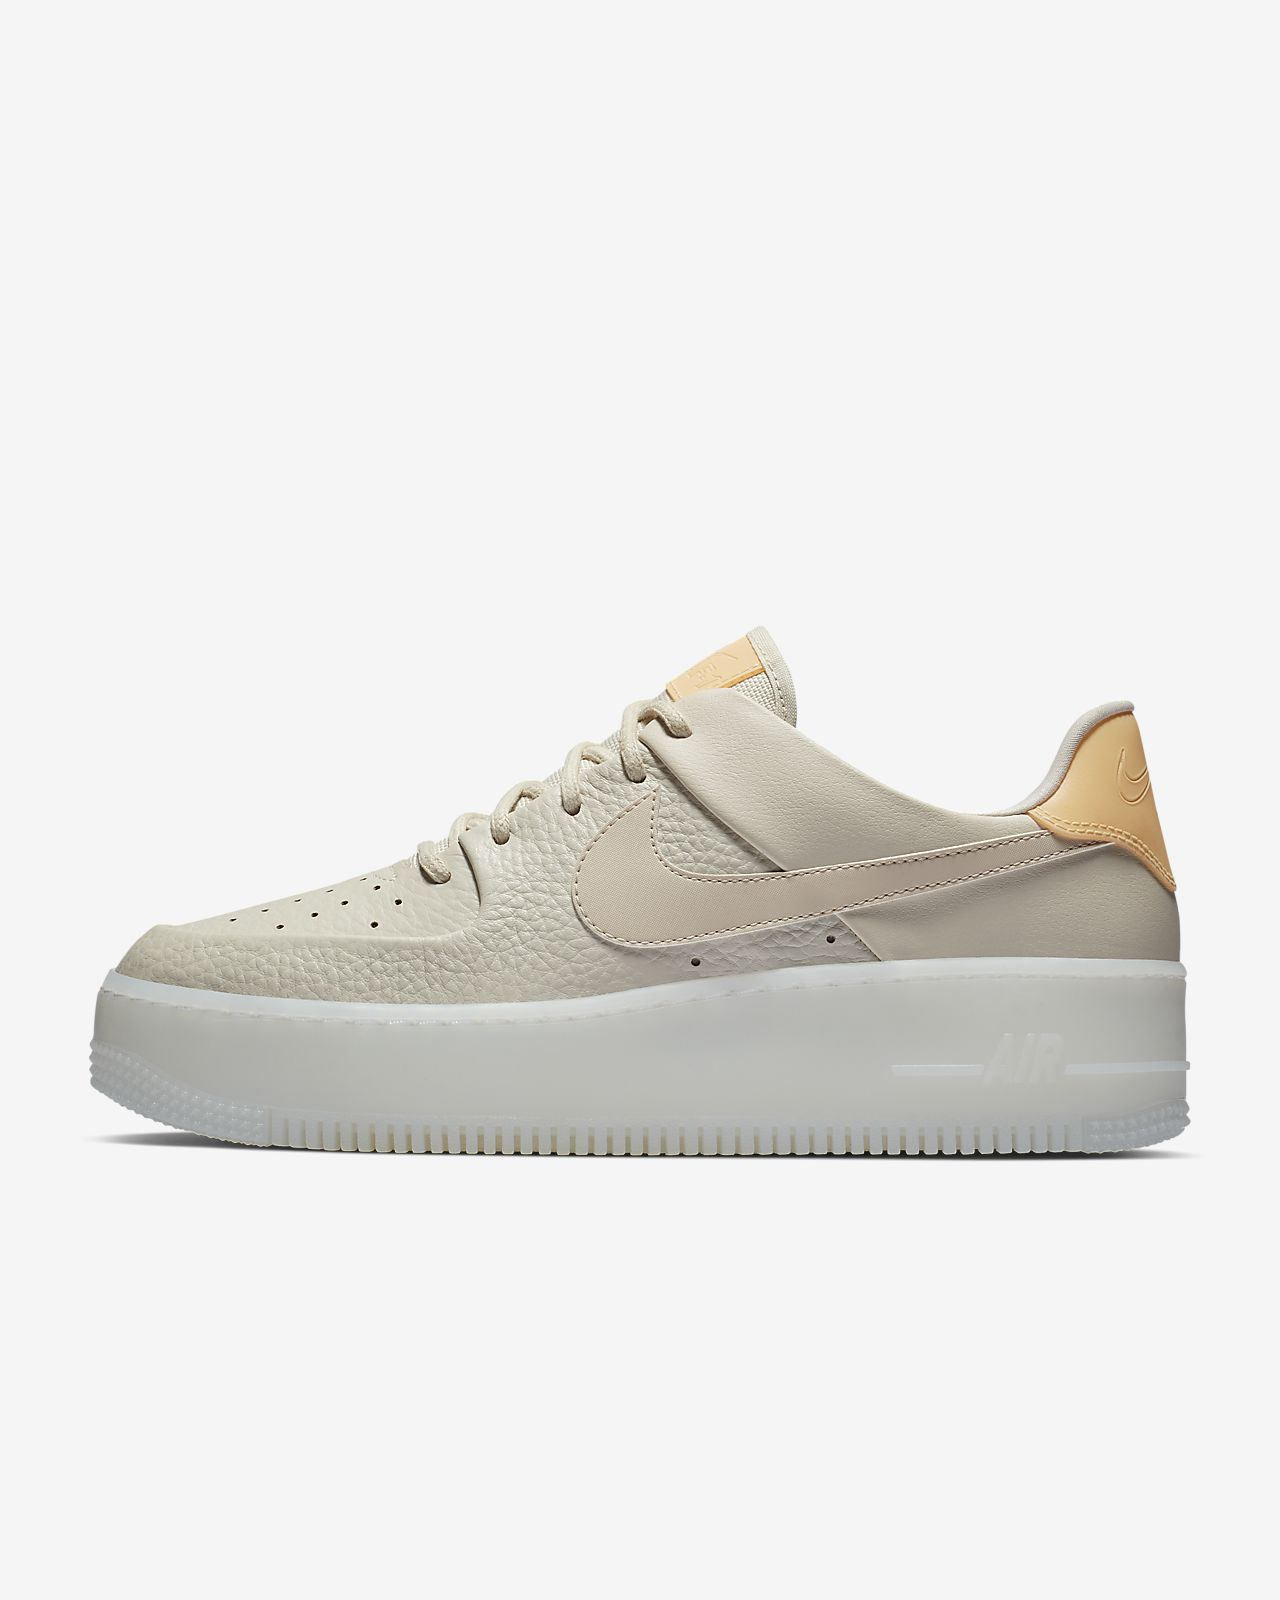 new arrivals c2ee9 4963c Buty damskie Nike Air Force 1 Sage Low LX. Nike.com PL